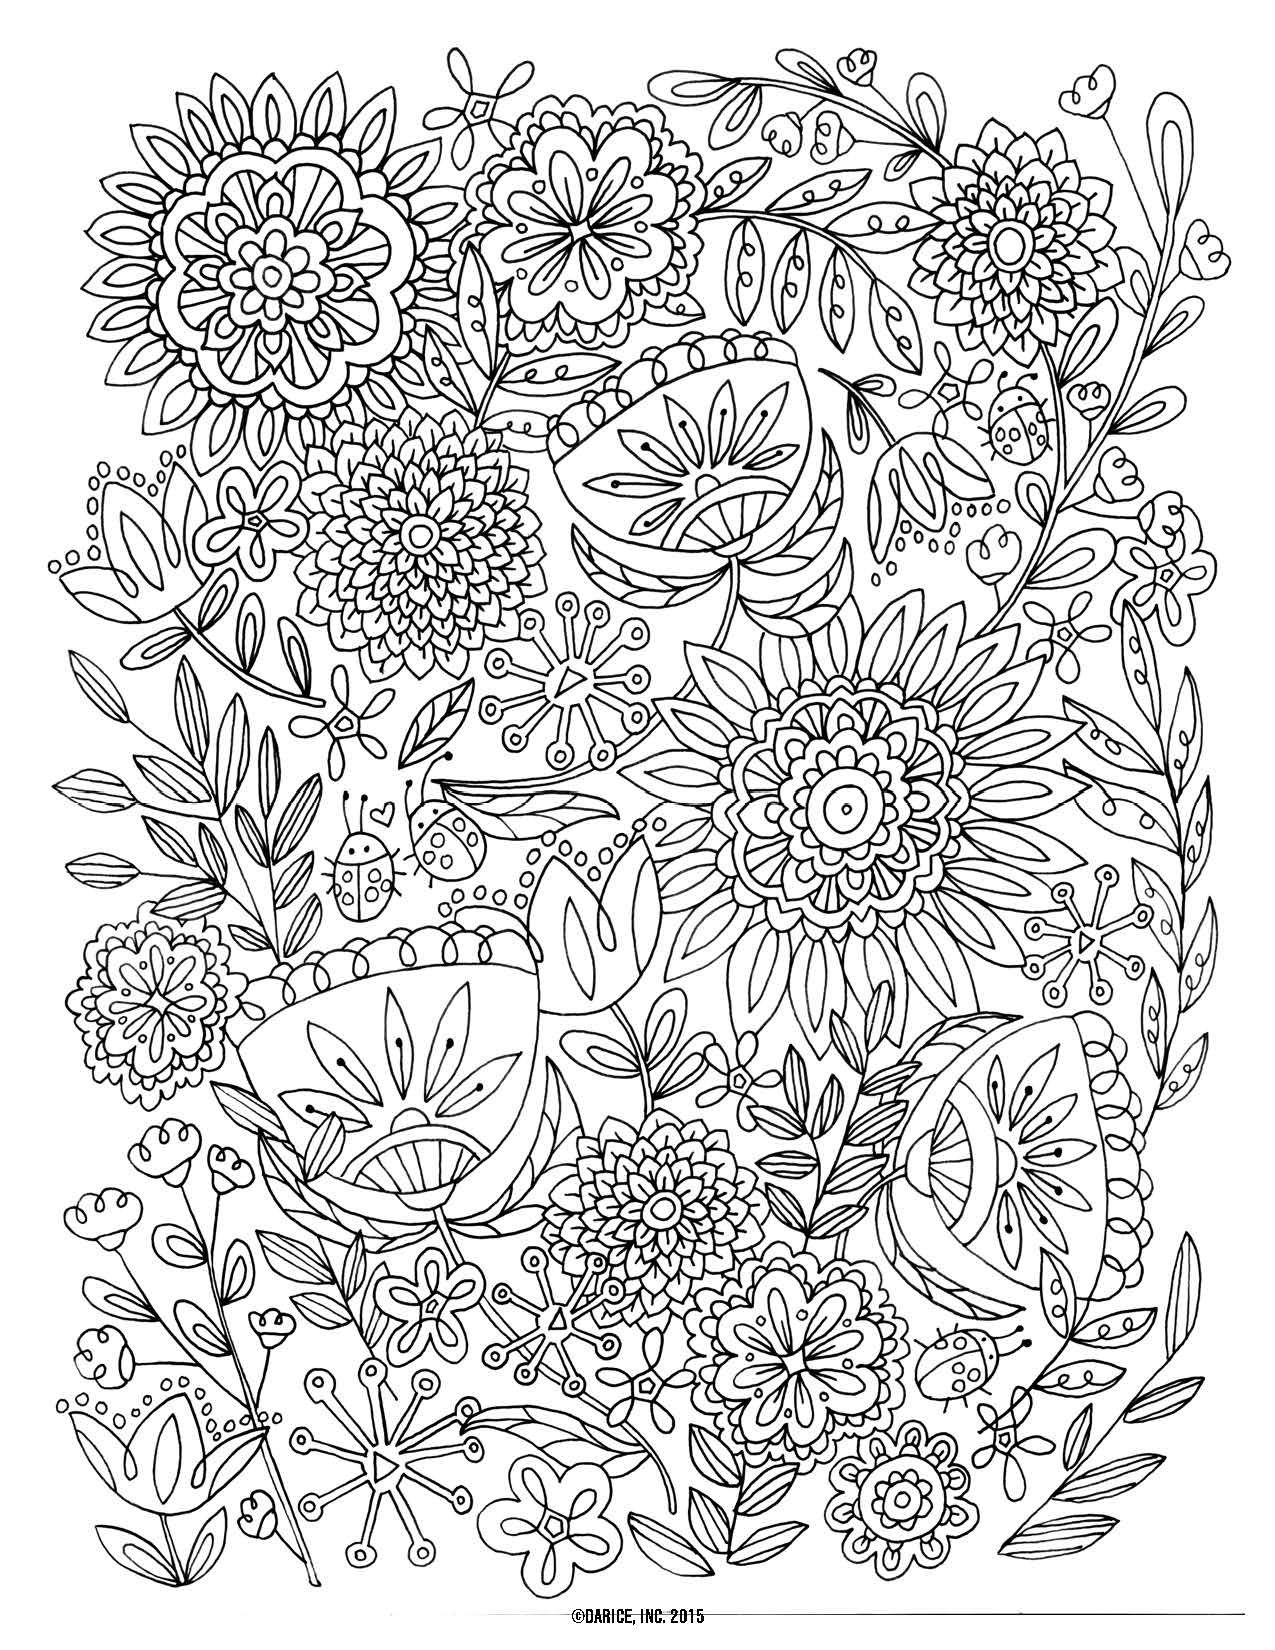 Colouring in for adults why - Free Coloring Pages Printables